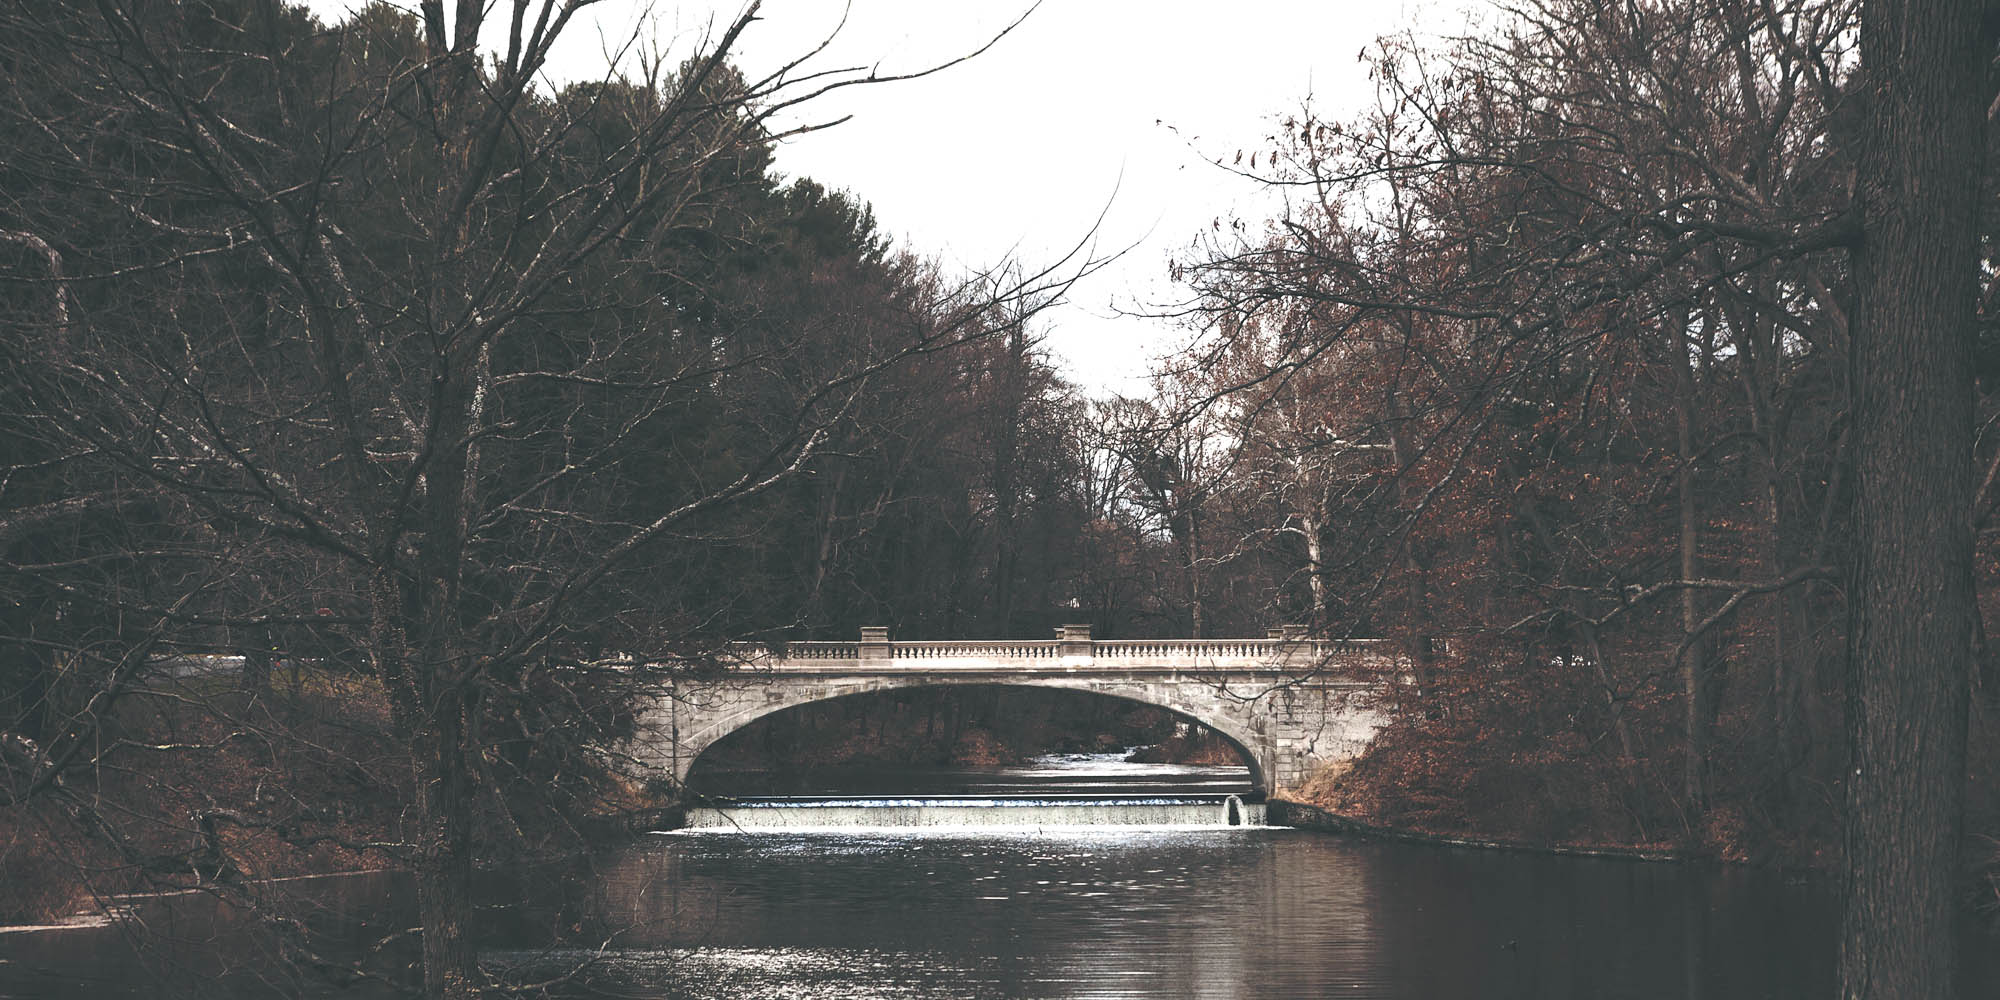 The bridge that connects Route 9 and the property.